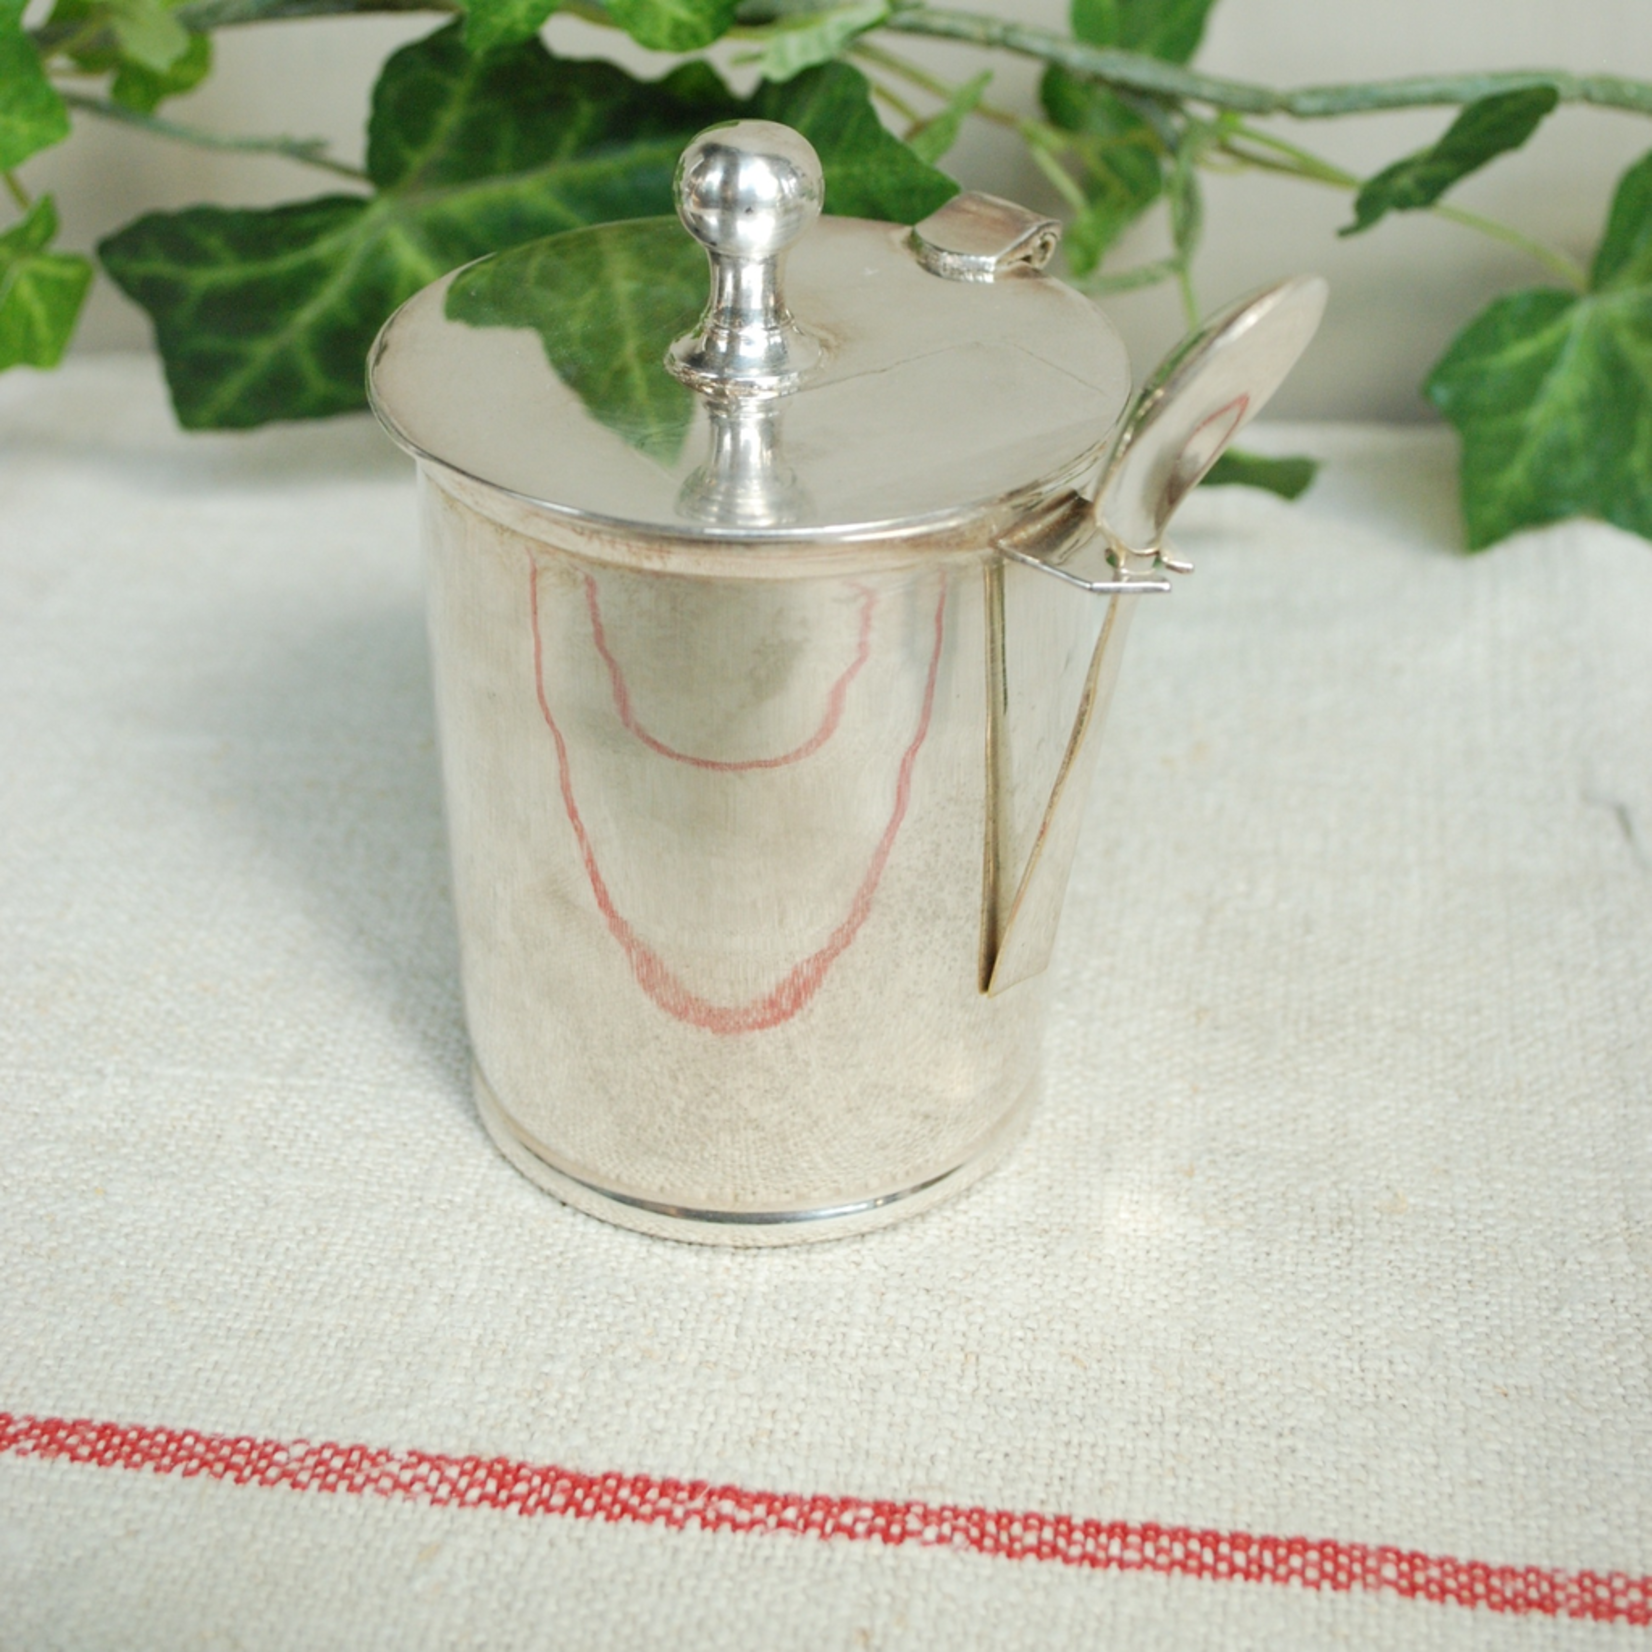 CHEHOMA SILVER JAM POT WITH SPOON